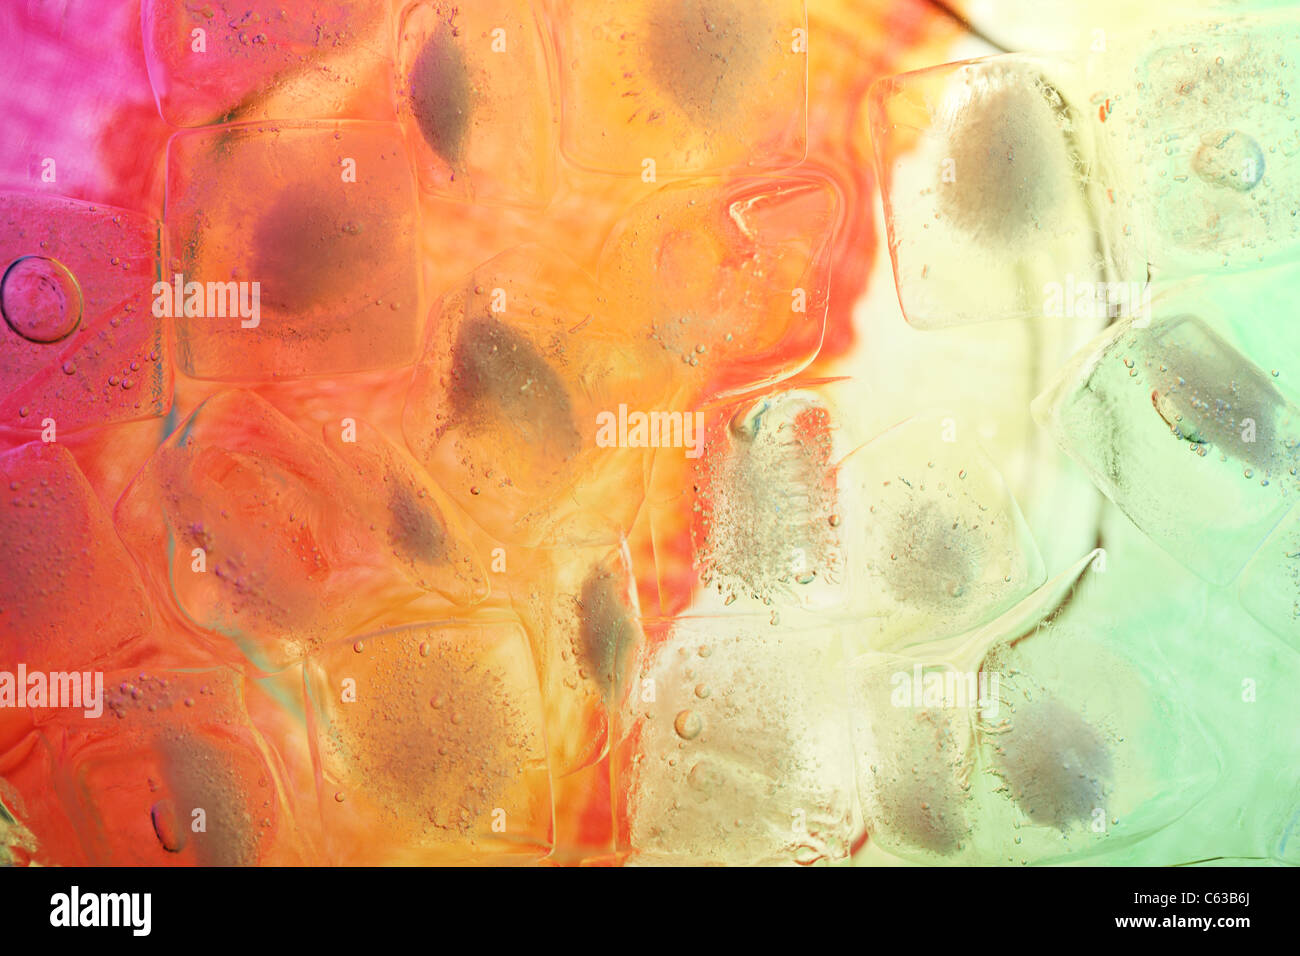 abstract colorful background with ice cube - Stock Image